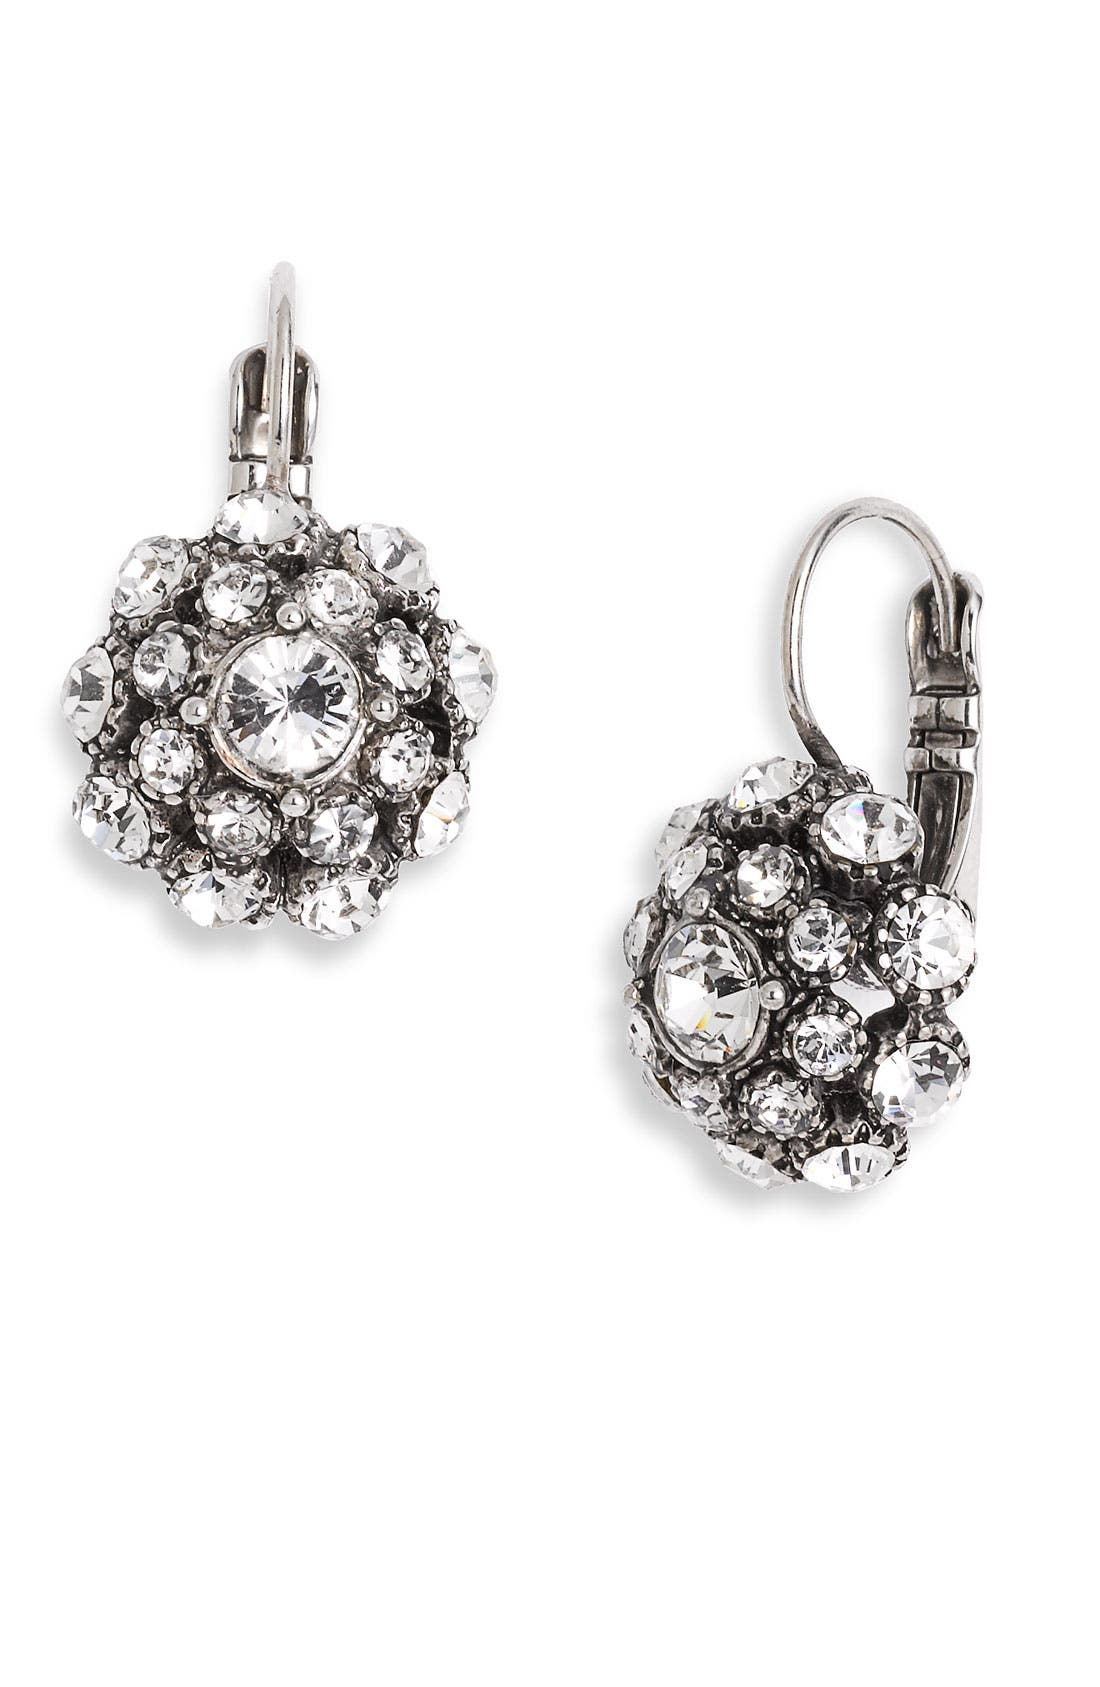 Main Image - kate spade new york 'putting on the ritz' drop earrings